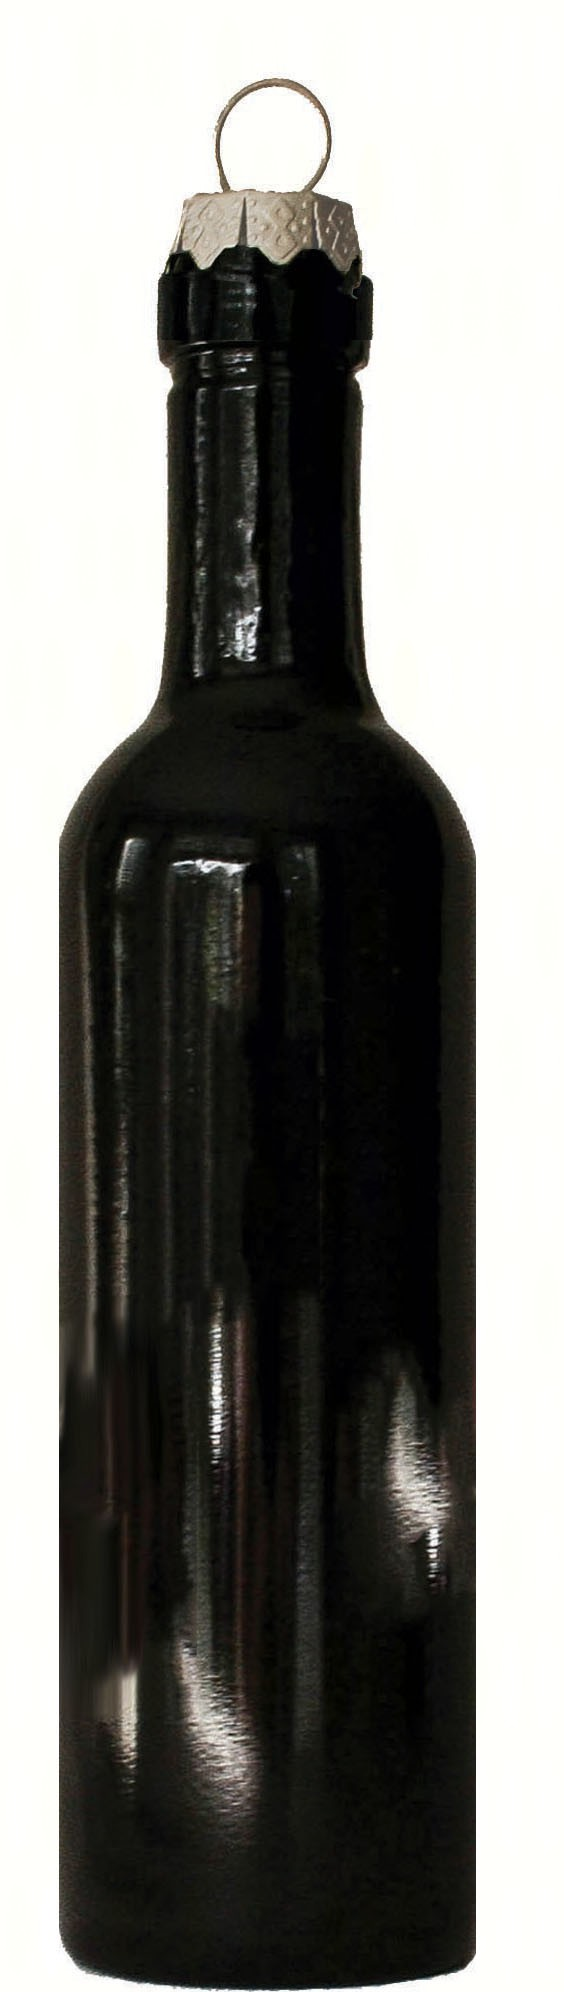 Bordeaux Bottle Wine Bottle Ornament with Silver Hook